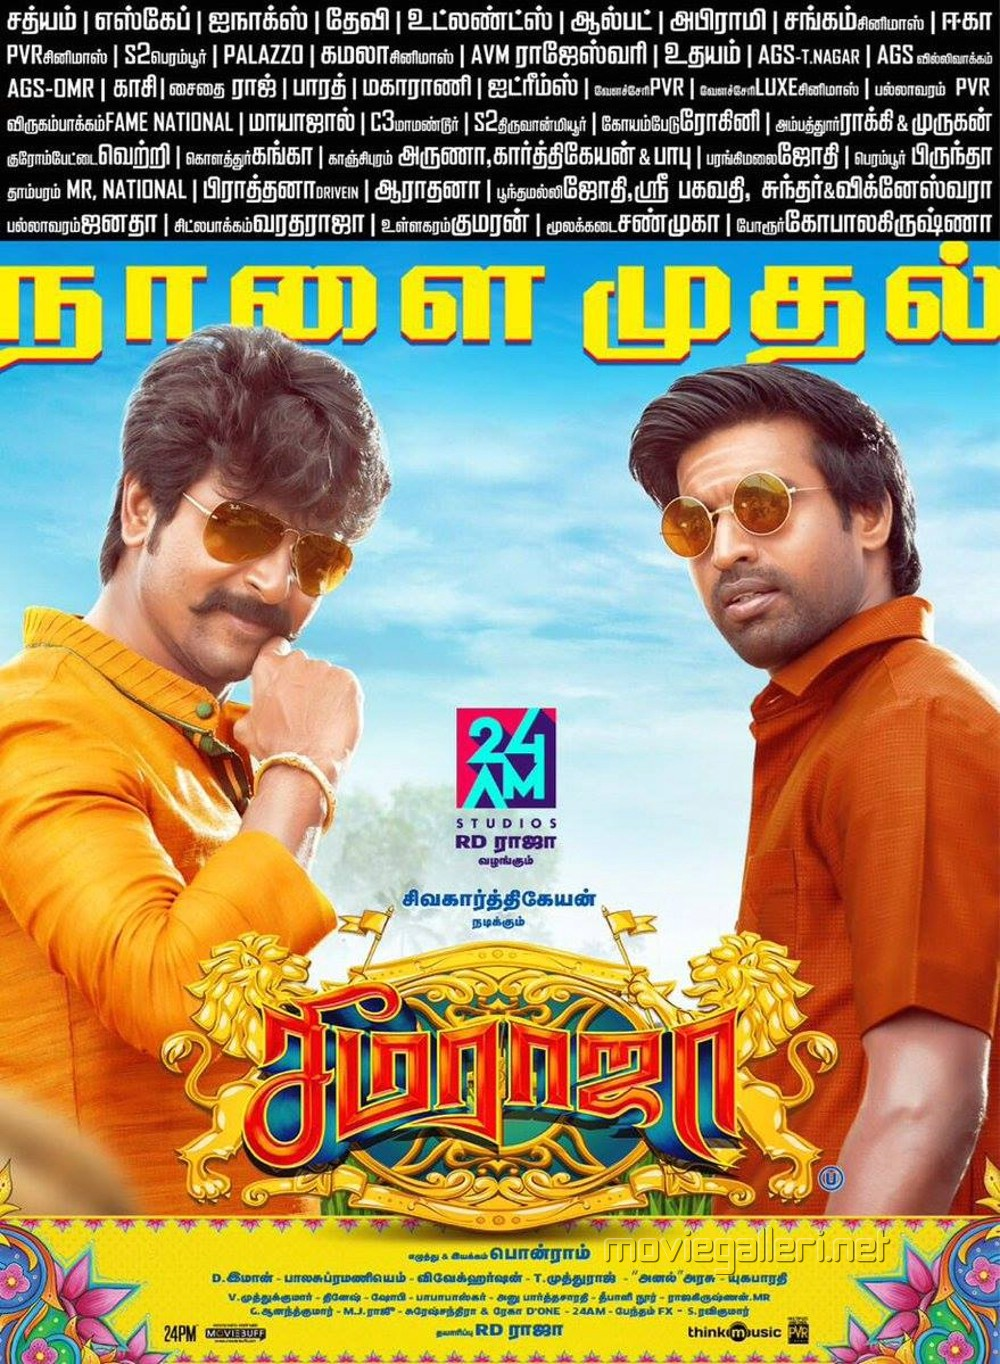 Sivakarthikeyan Soori Seema Raja Movie Release from Tomorrow Poster